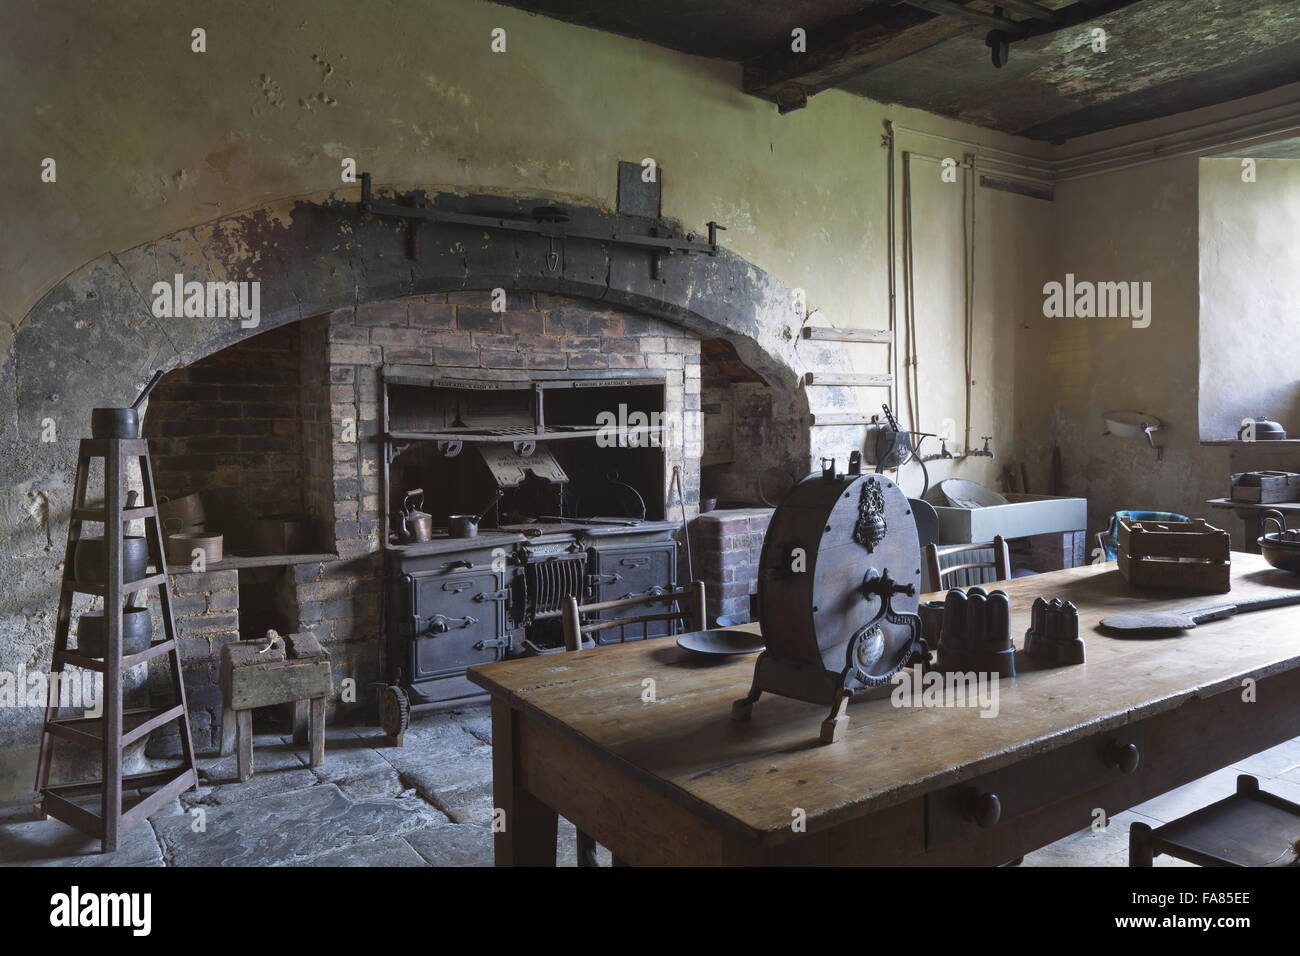 The Range In The Old Kitchen At Chastleton House, Oxfordshire. The Kitchen  Has Remained Unmodernised Since The Seventeenth Century Apart From The Range  ...